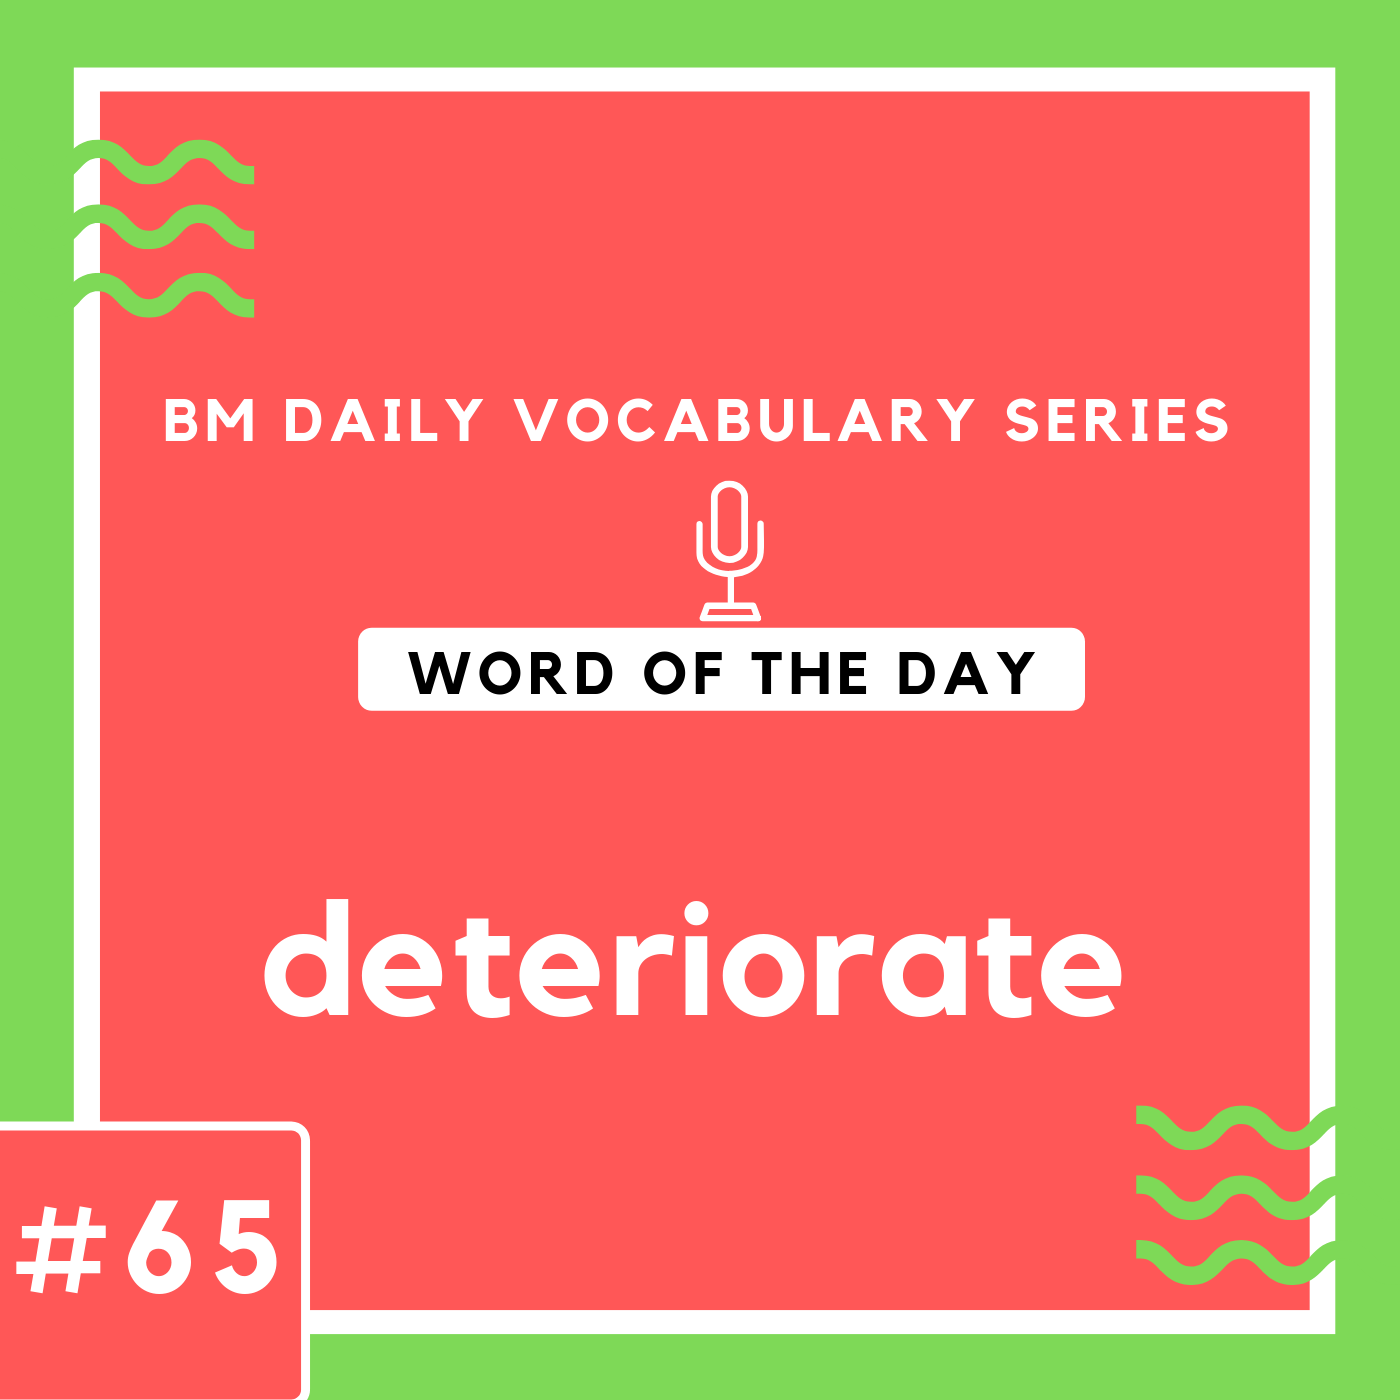 200 BM Daily Vocabulary #65 | deteriorate